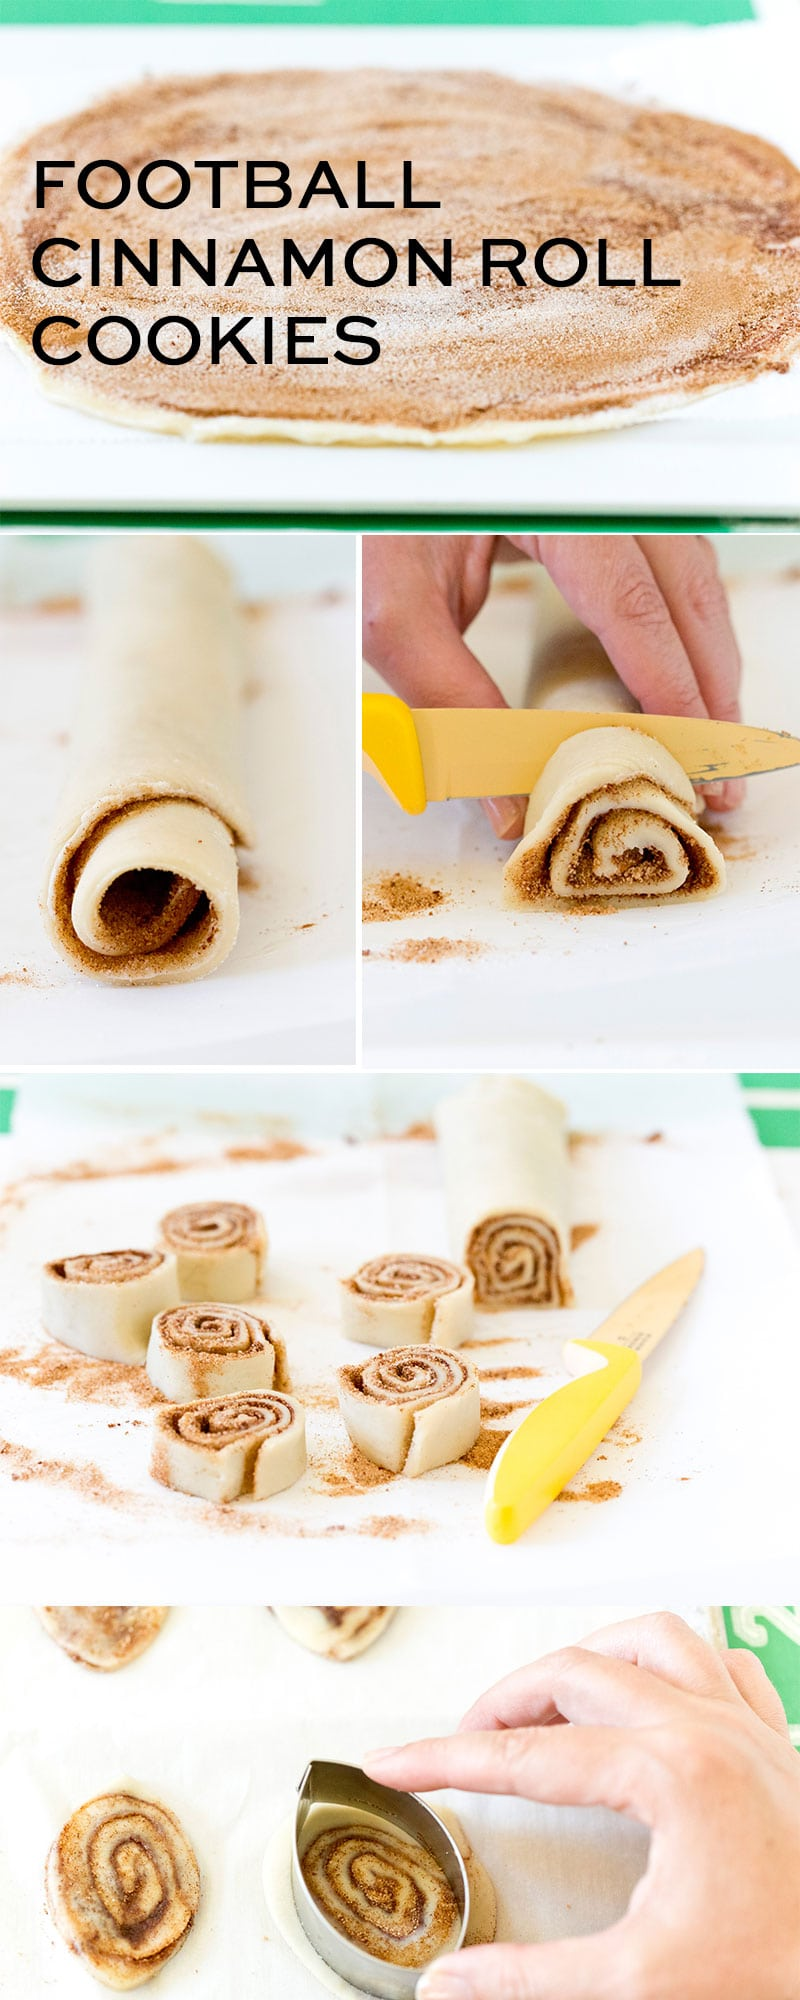 Step-By-Step Instructions for making delicious Football Cinnamon Roll Cookies, the perfect treat for tailgates!